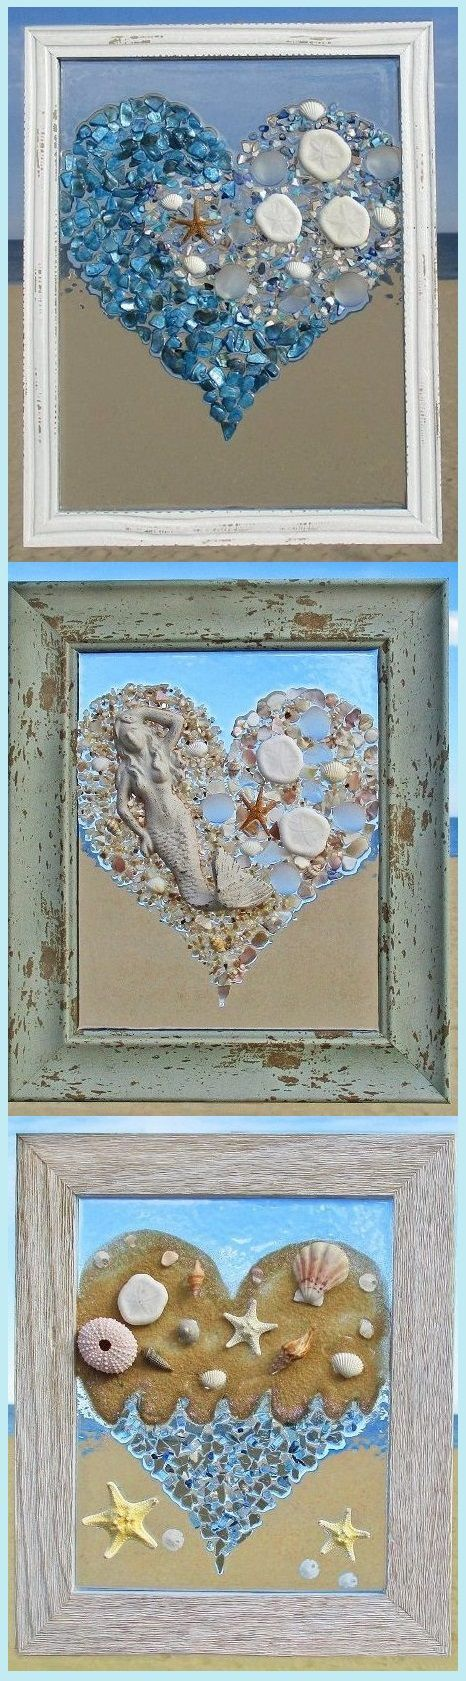 Unique beach window art by luminosities made of sea glass shells unique beach window art by luminosities made of sea glass shells gems voltagebd Images